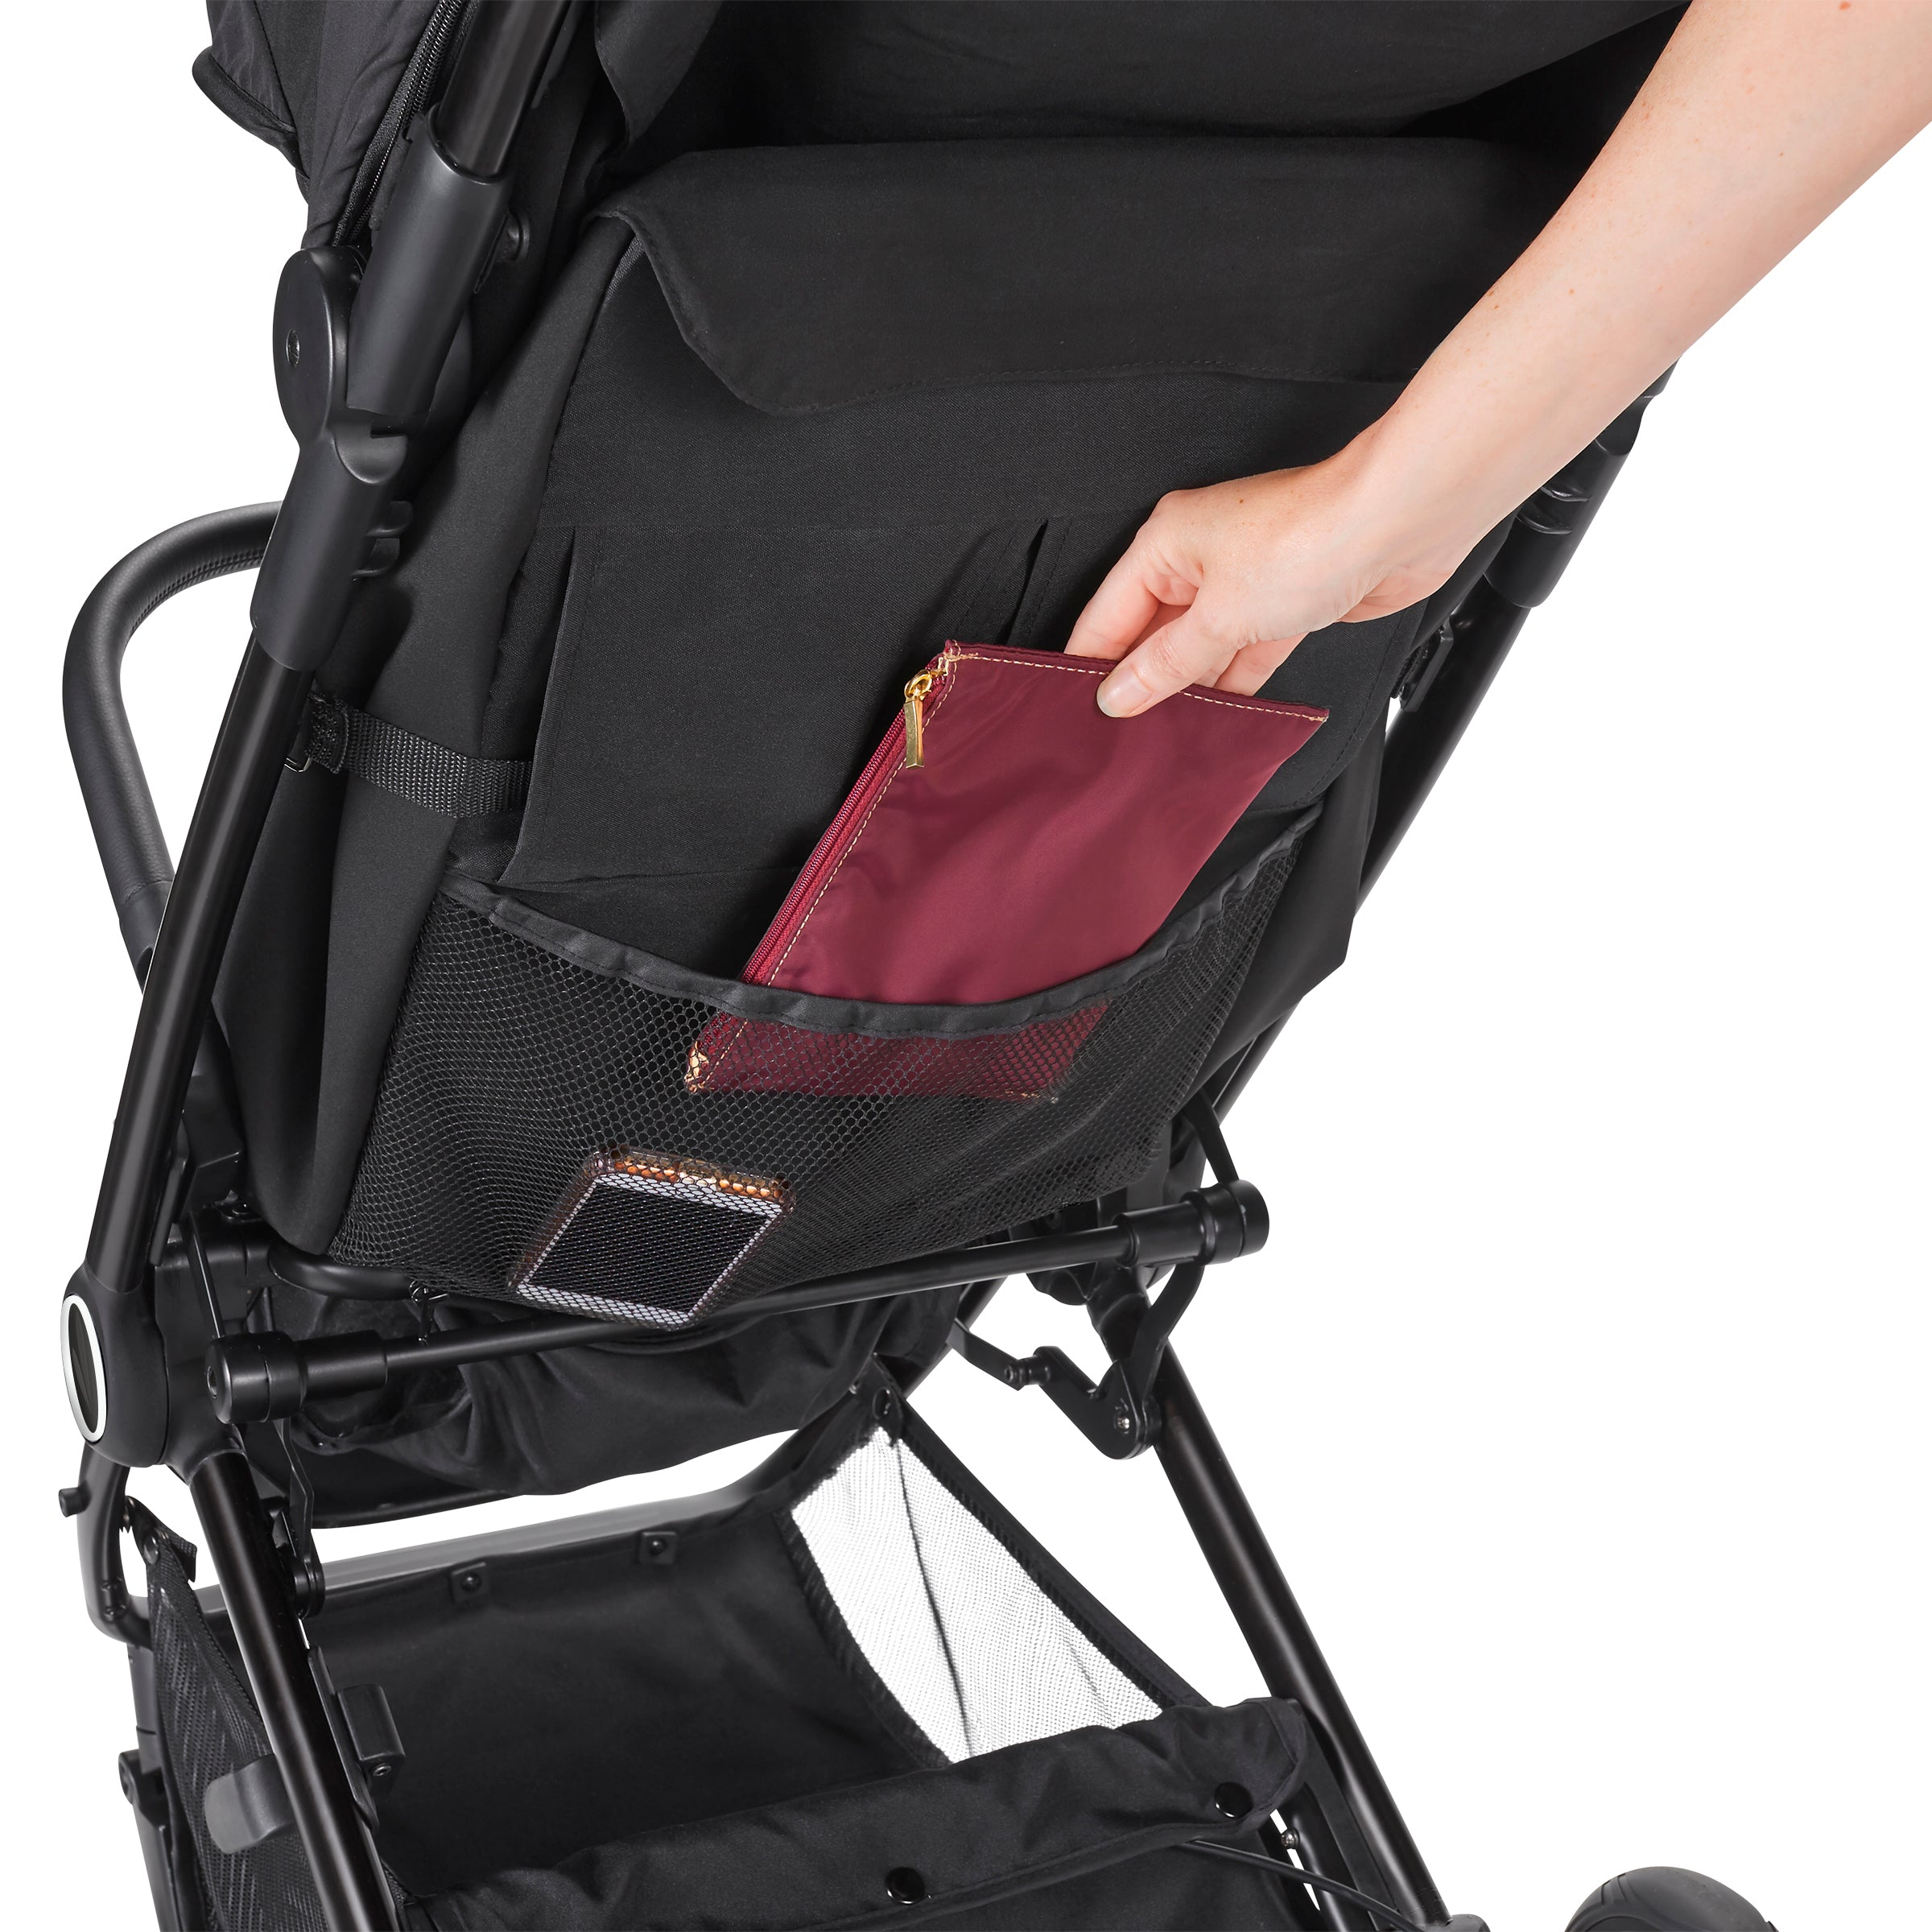 Larktale autofold™ Stroller - Clovelly Yellow